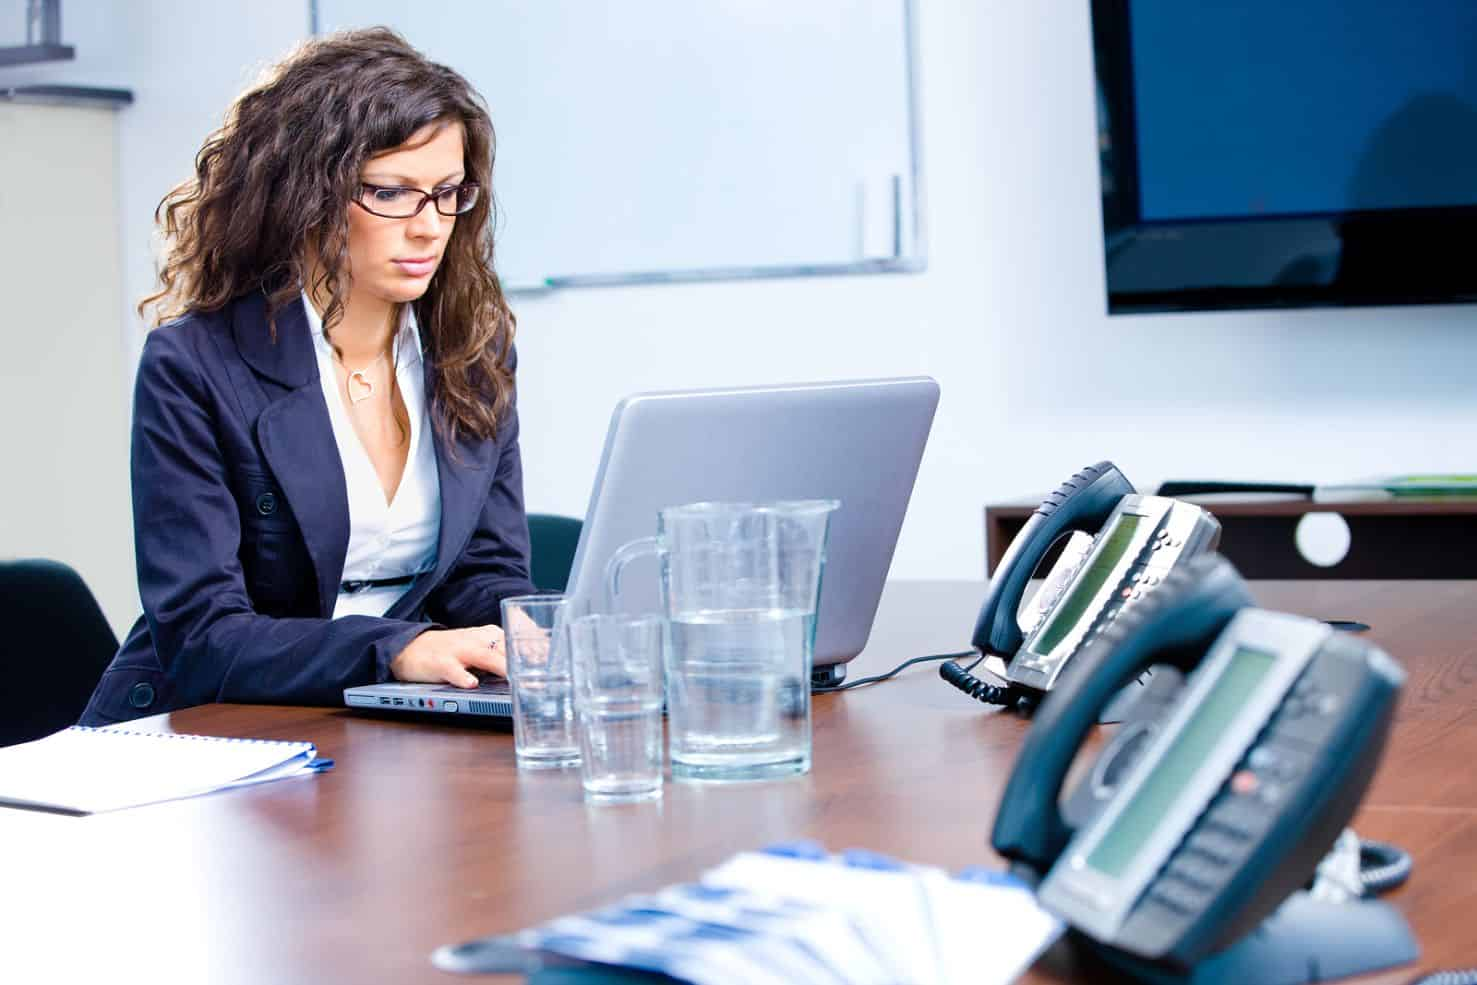 Conference room networking provider